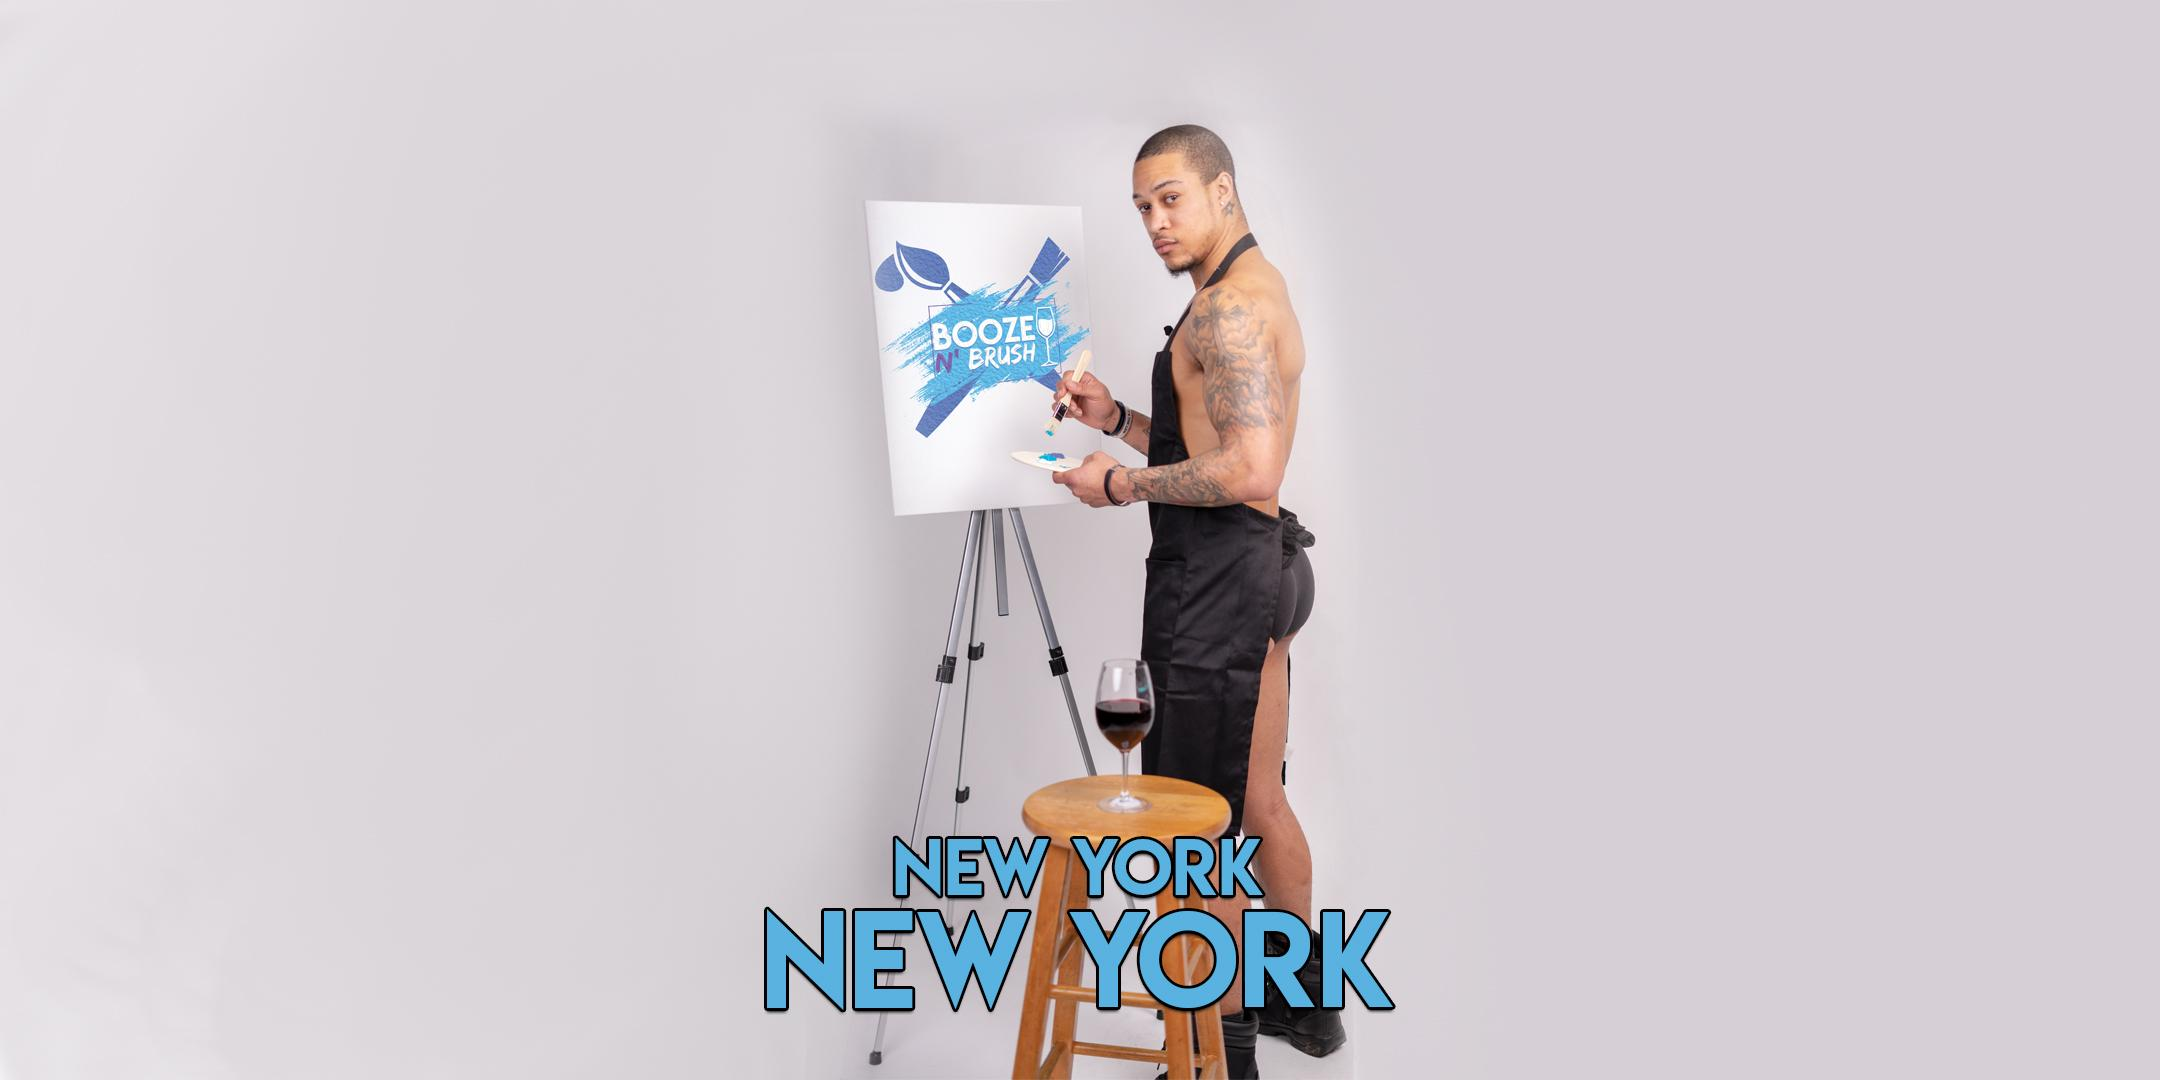 Booze N' Brush Next to Naked Sip N' Paint NYC, NY Exotic Male Model Painting Event